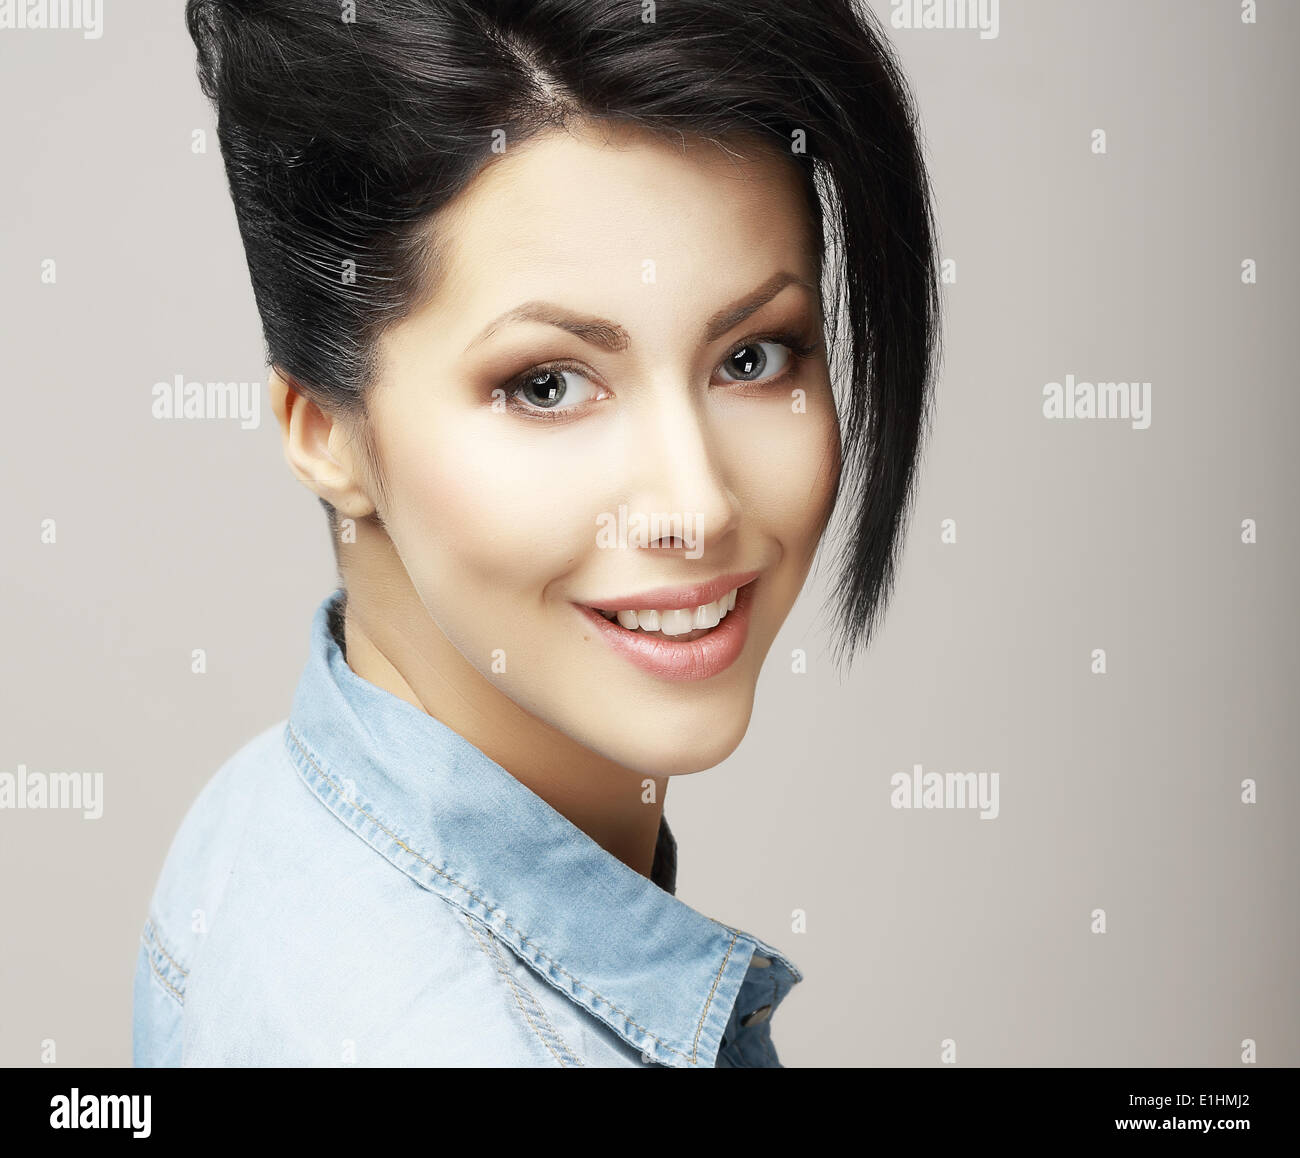 Toothy Smile. Face of Delighted Friendly Woman with Natural Clean Skin. Freshness - Stock Image